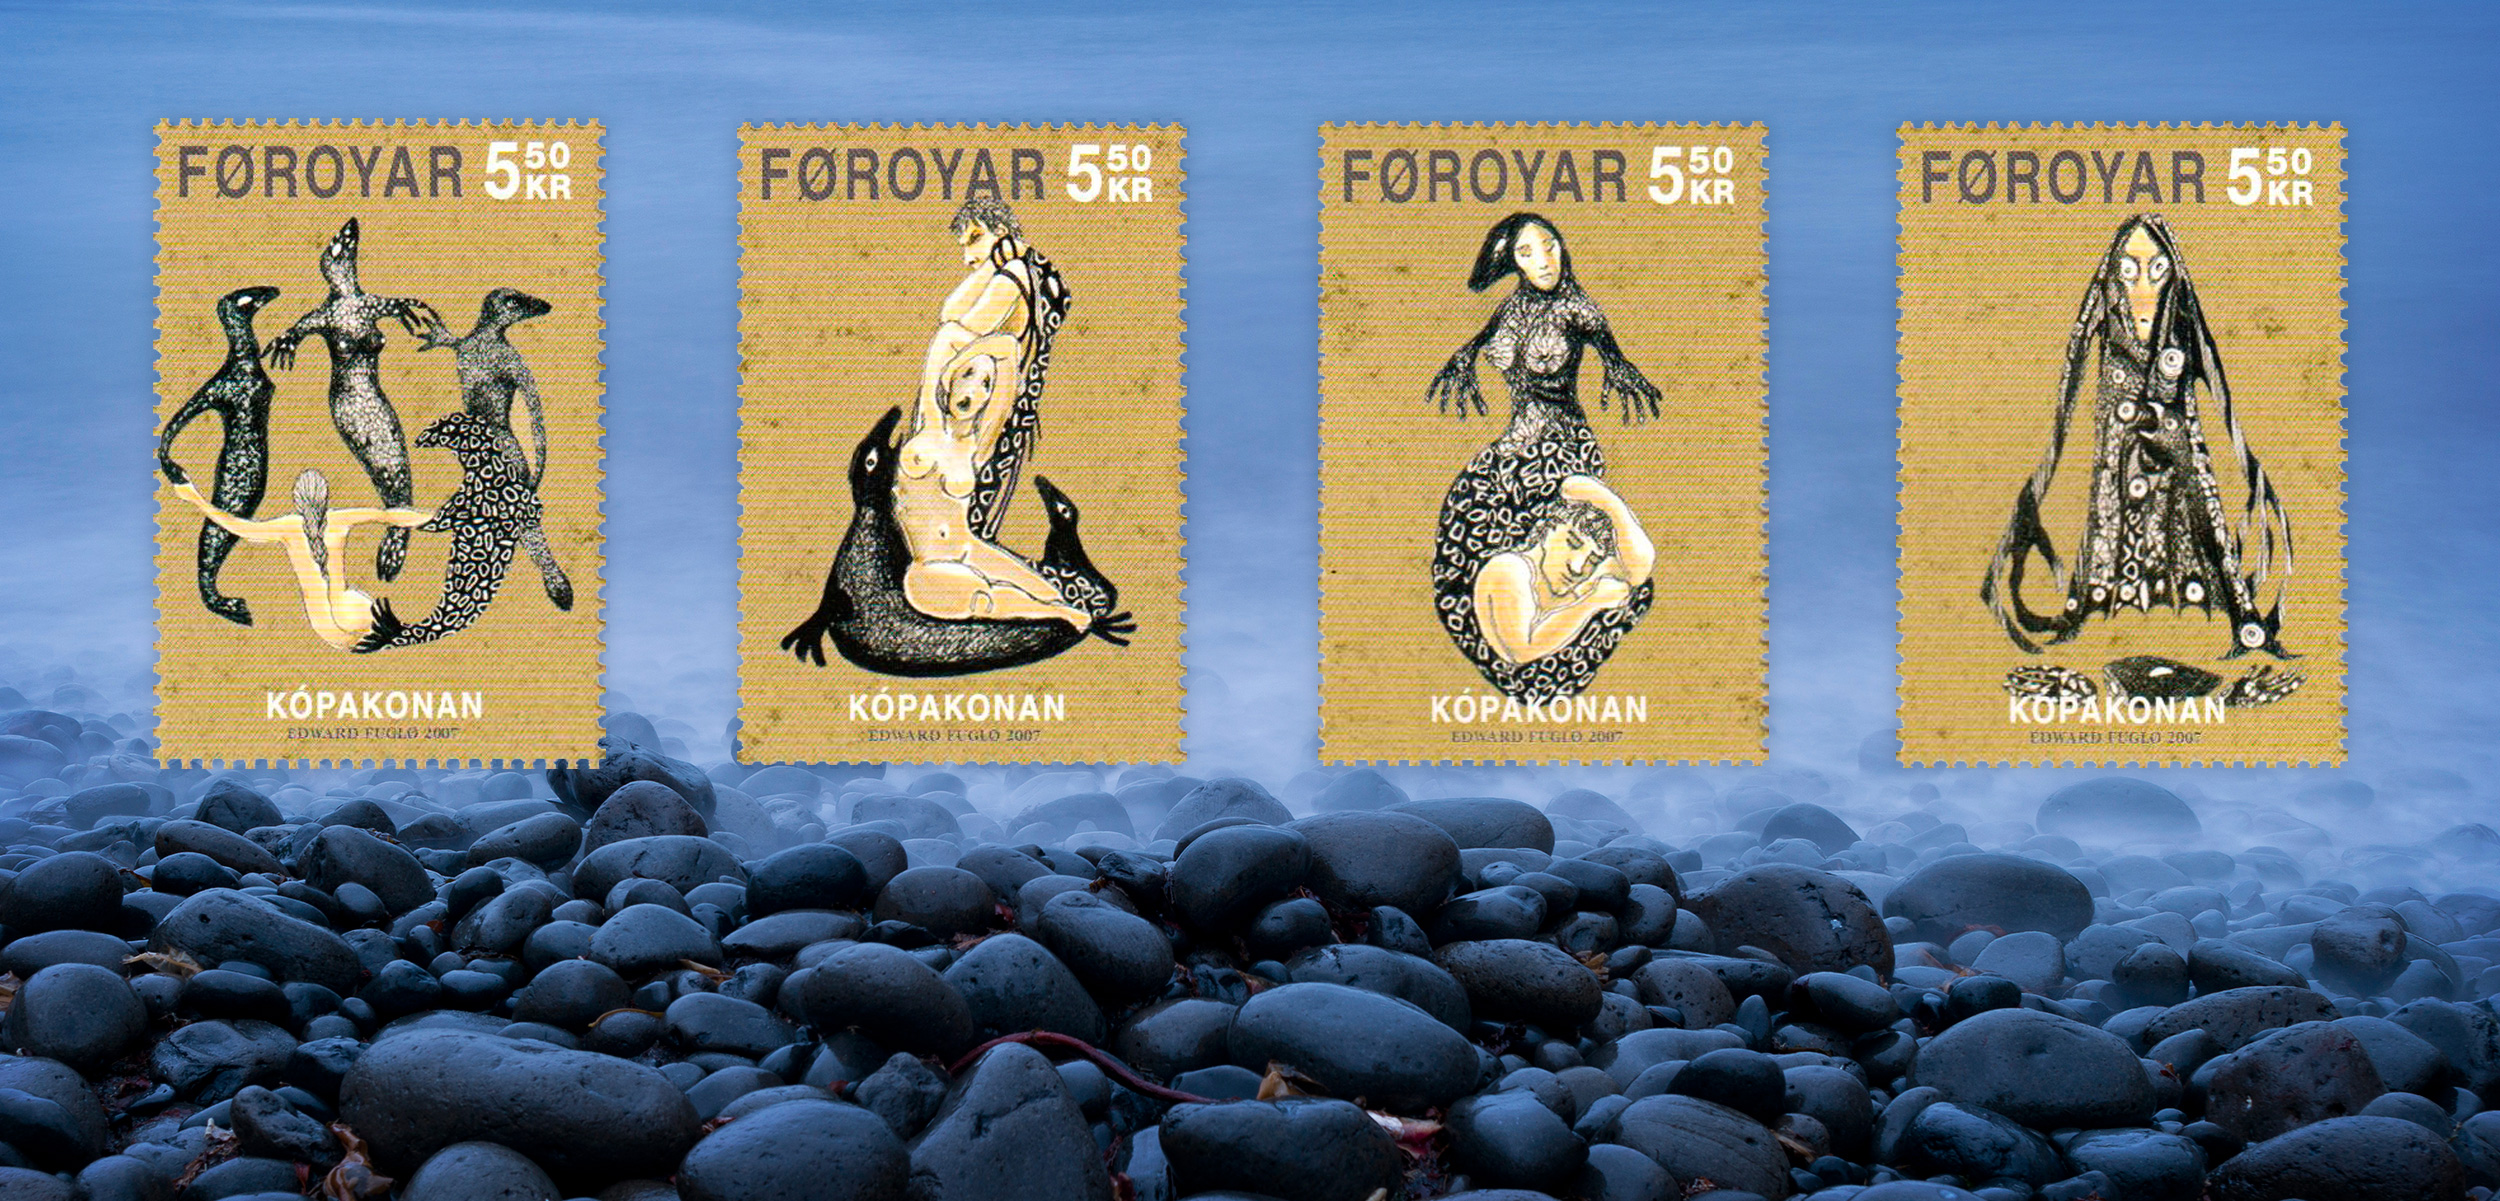 The story of Seal Woman, a Selkie, comes from the Faroe Islands, an archipelago that is part of the Kingdom of Denmark.Artist Edward Fuglø designed a series of 10 stamps, four of which are shown here. Background photo byOlaf Krüger/imagebroker/Corbis